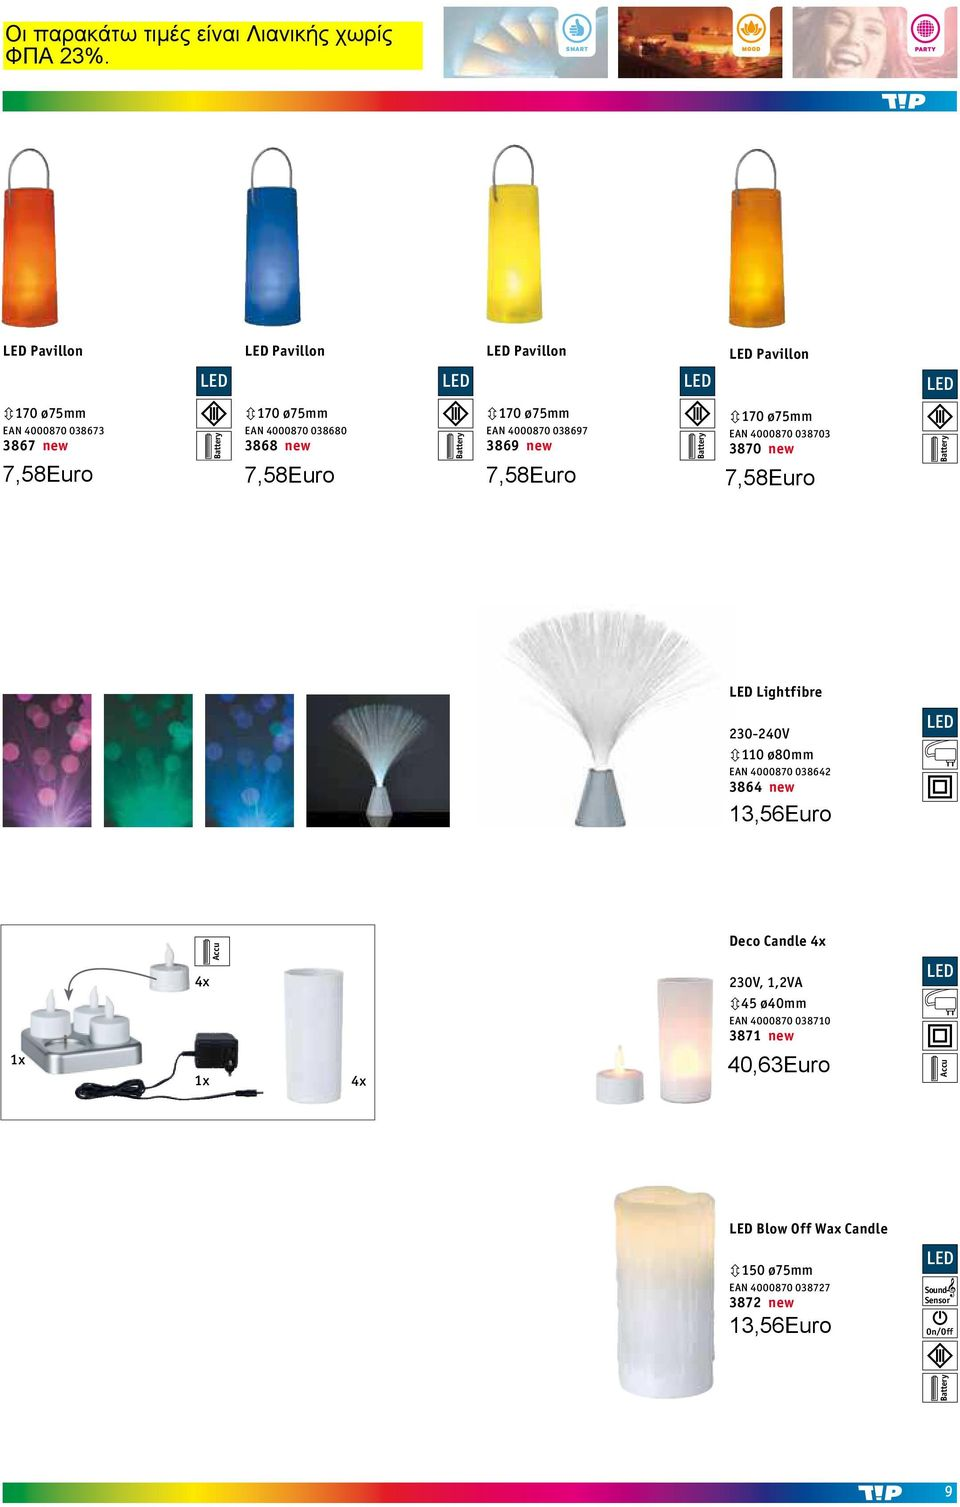 Lightfibre 230-240V 3110 ø80mm EAN 4000870 038642 3864 new 5,76 5,24 4,99 Alu 1x 4x 1x Accu Accu Sound- Sensor 4x Deco Candle 4x, 1,2VA 345